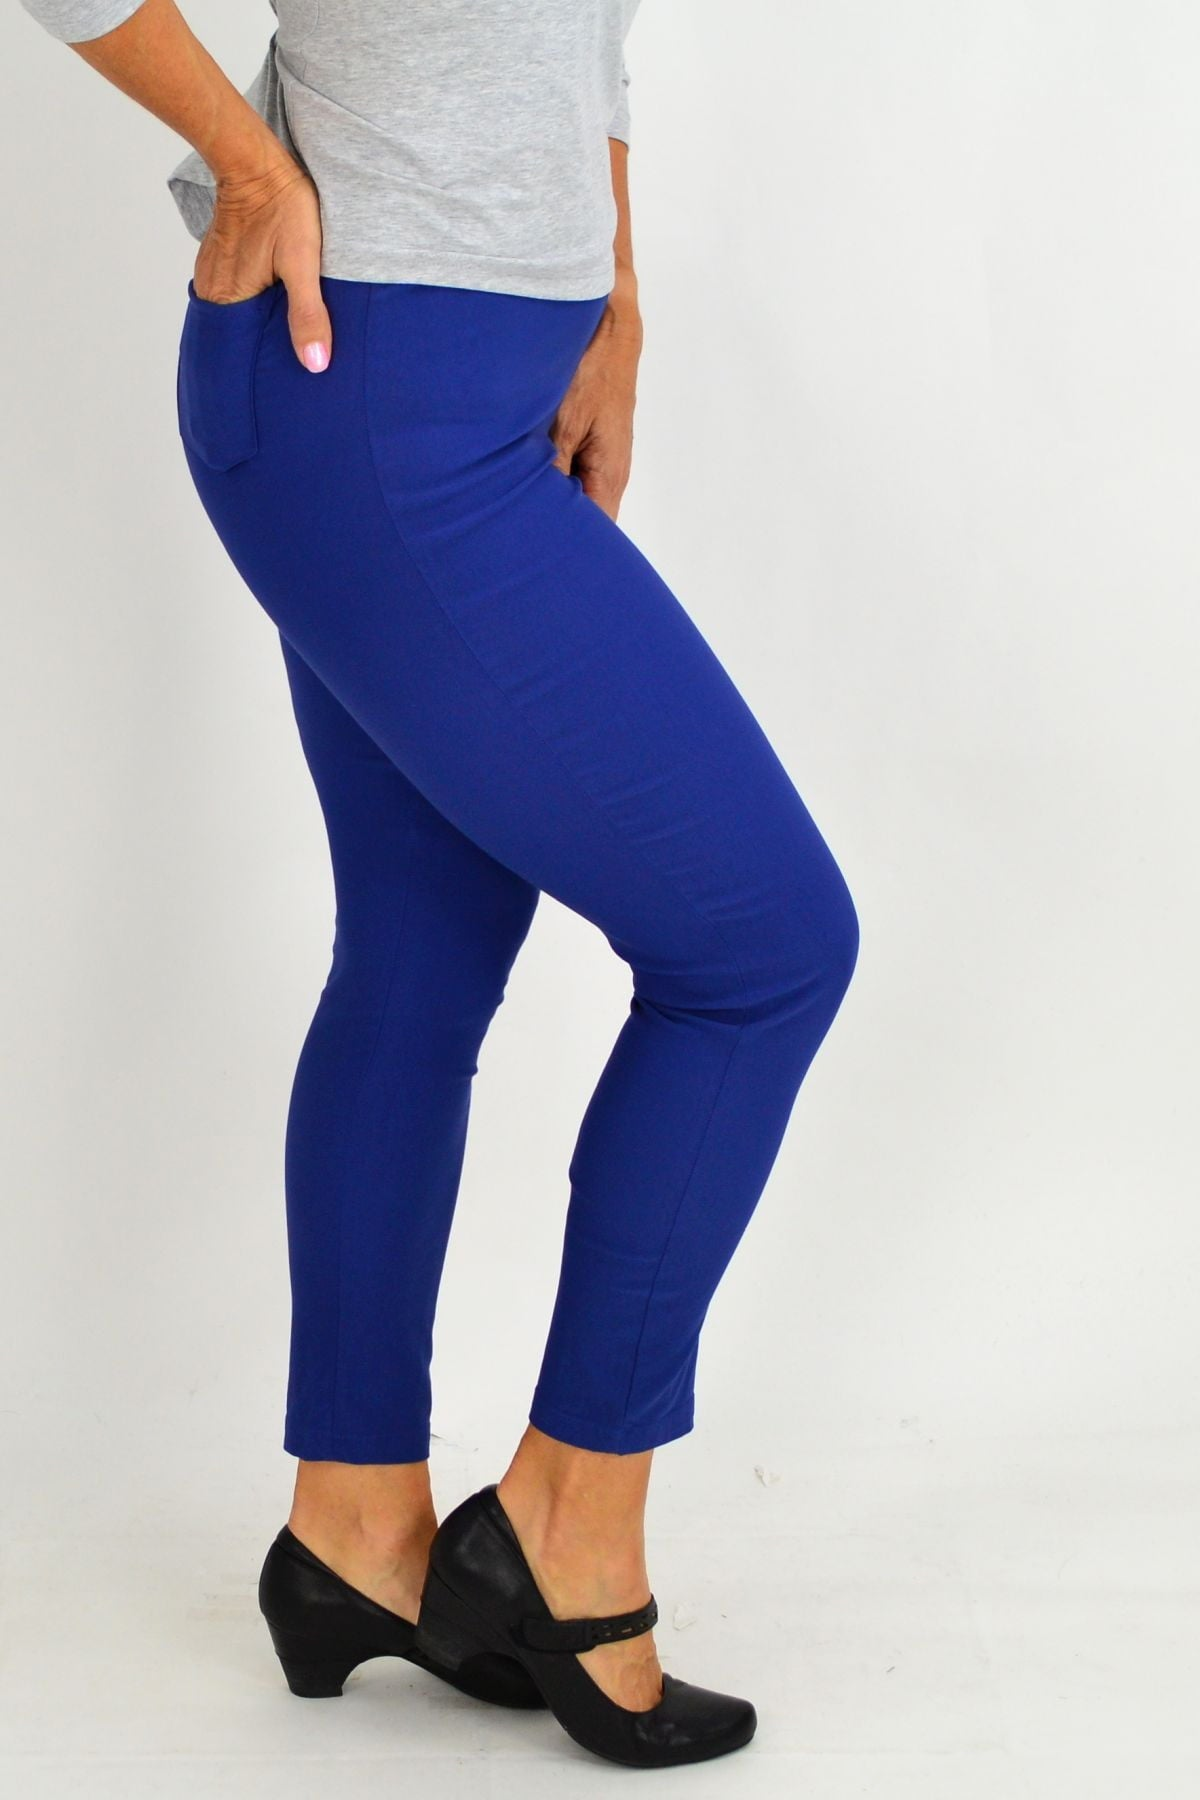 Blue Eva Stretch 7/8 Pants | I Love Tunics | Tunic Tops | Tunic | Tunic Dresses  | womens clothing online